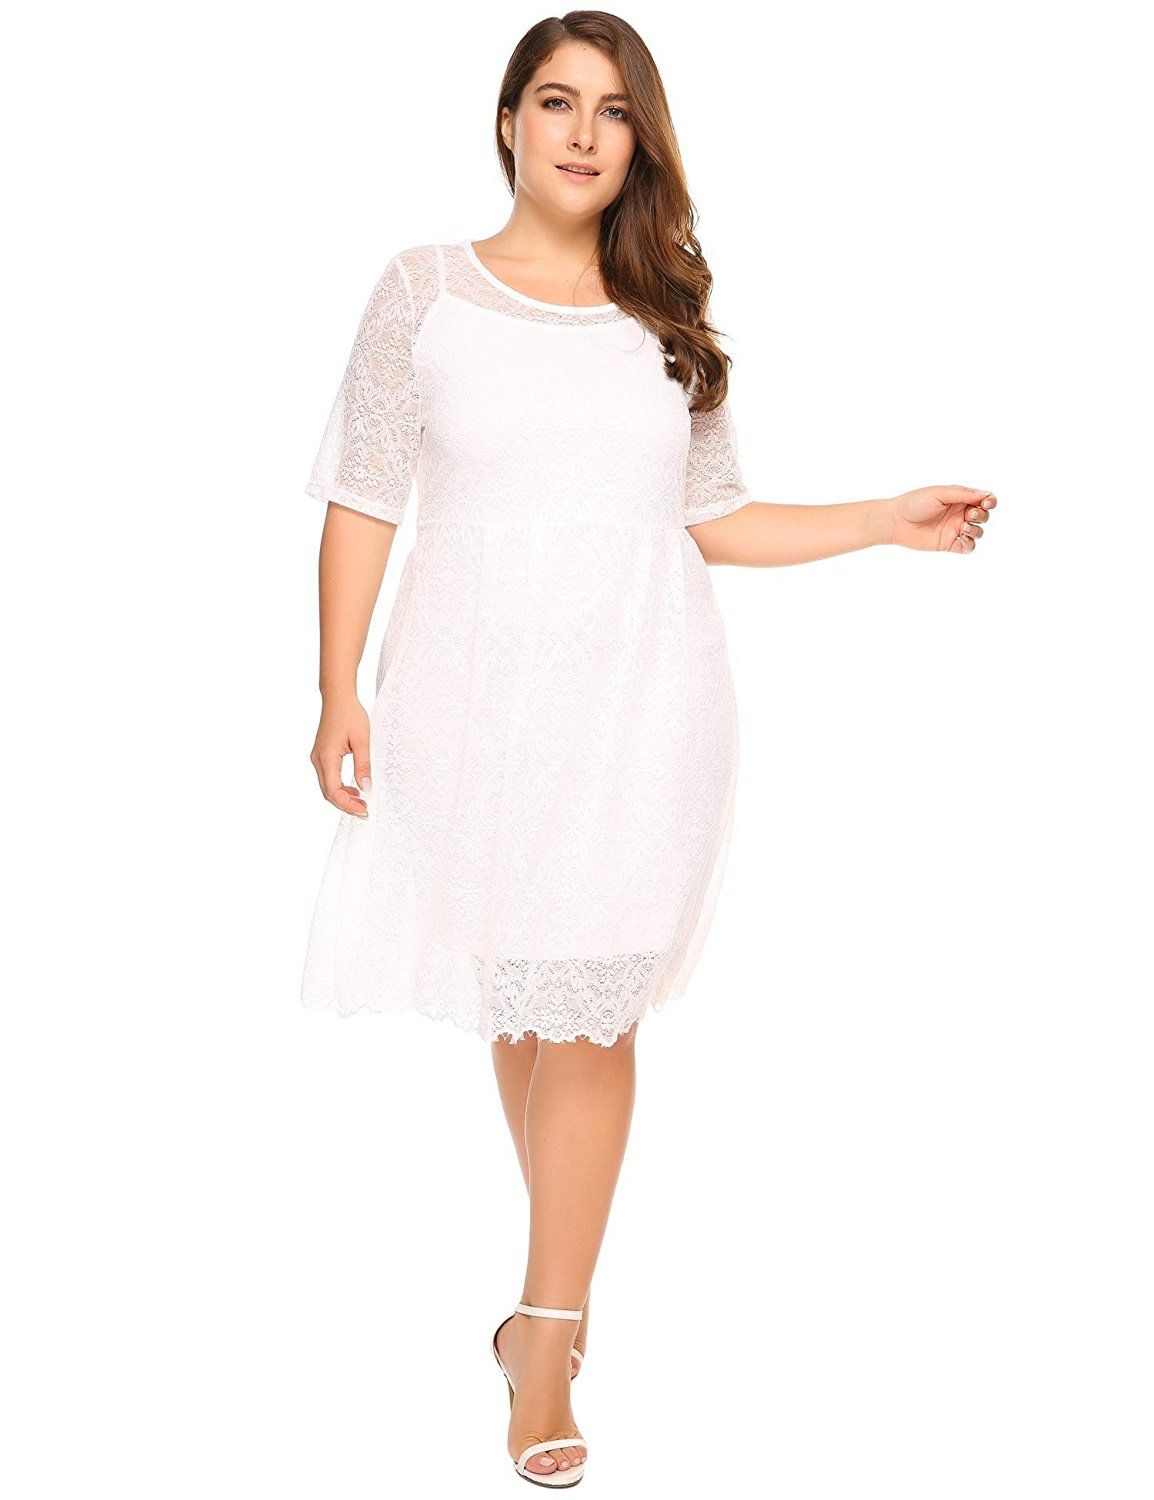 6a832dfd02b3 IN VOLAND Women s Plus Size Lace Bridal Formal Skater Dress - Floral Lace 3